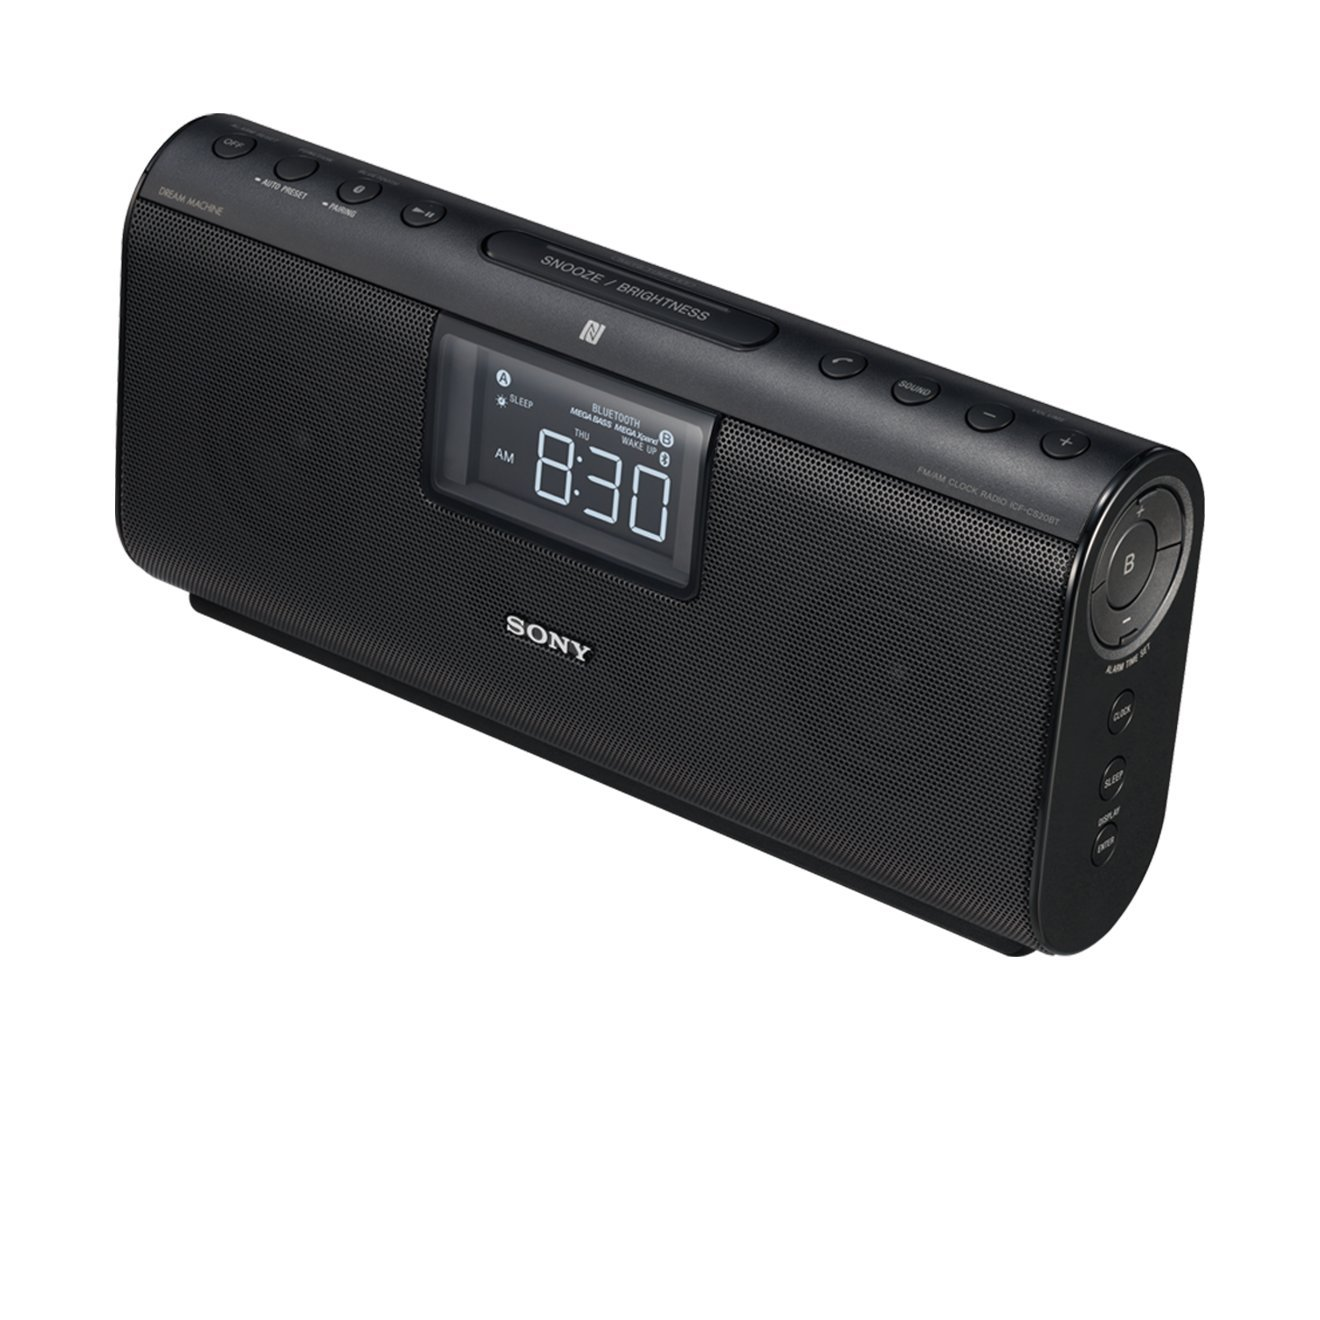 Sony ICF-CS20BT Hands Free Clock Radio with Bluetooth and NFC - Black